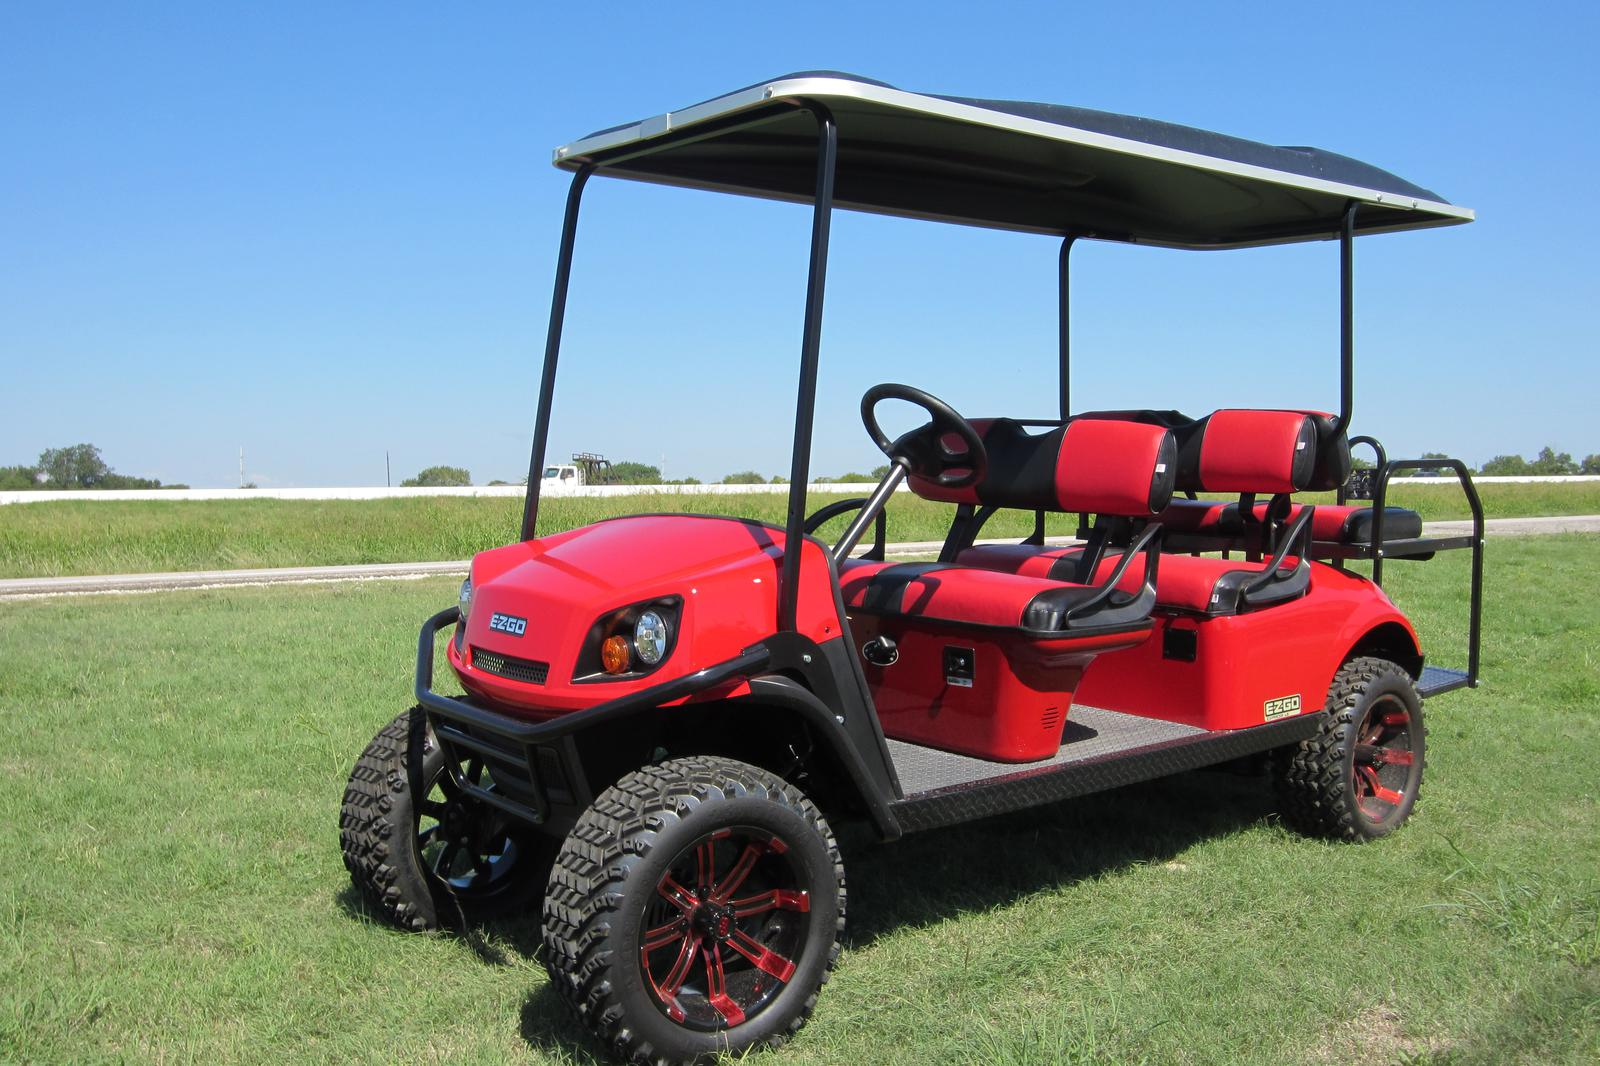 Red Lifted Golf Cart Burgandy on red ezgo golf cart, red dot enclosures golf cart, lifted ezgo golf cart, car wheels on lifted golf cart, red custom golf cart, red chevy golf cart, super lifted golf cart, red golf cart illustration, lifted yamaha golf cart, red jack up golf carts,